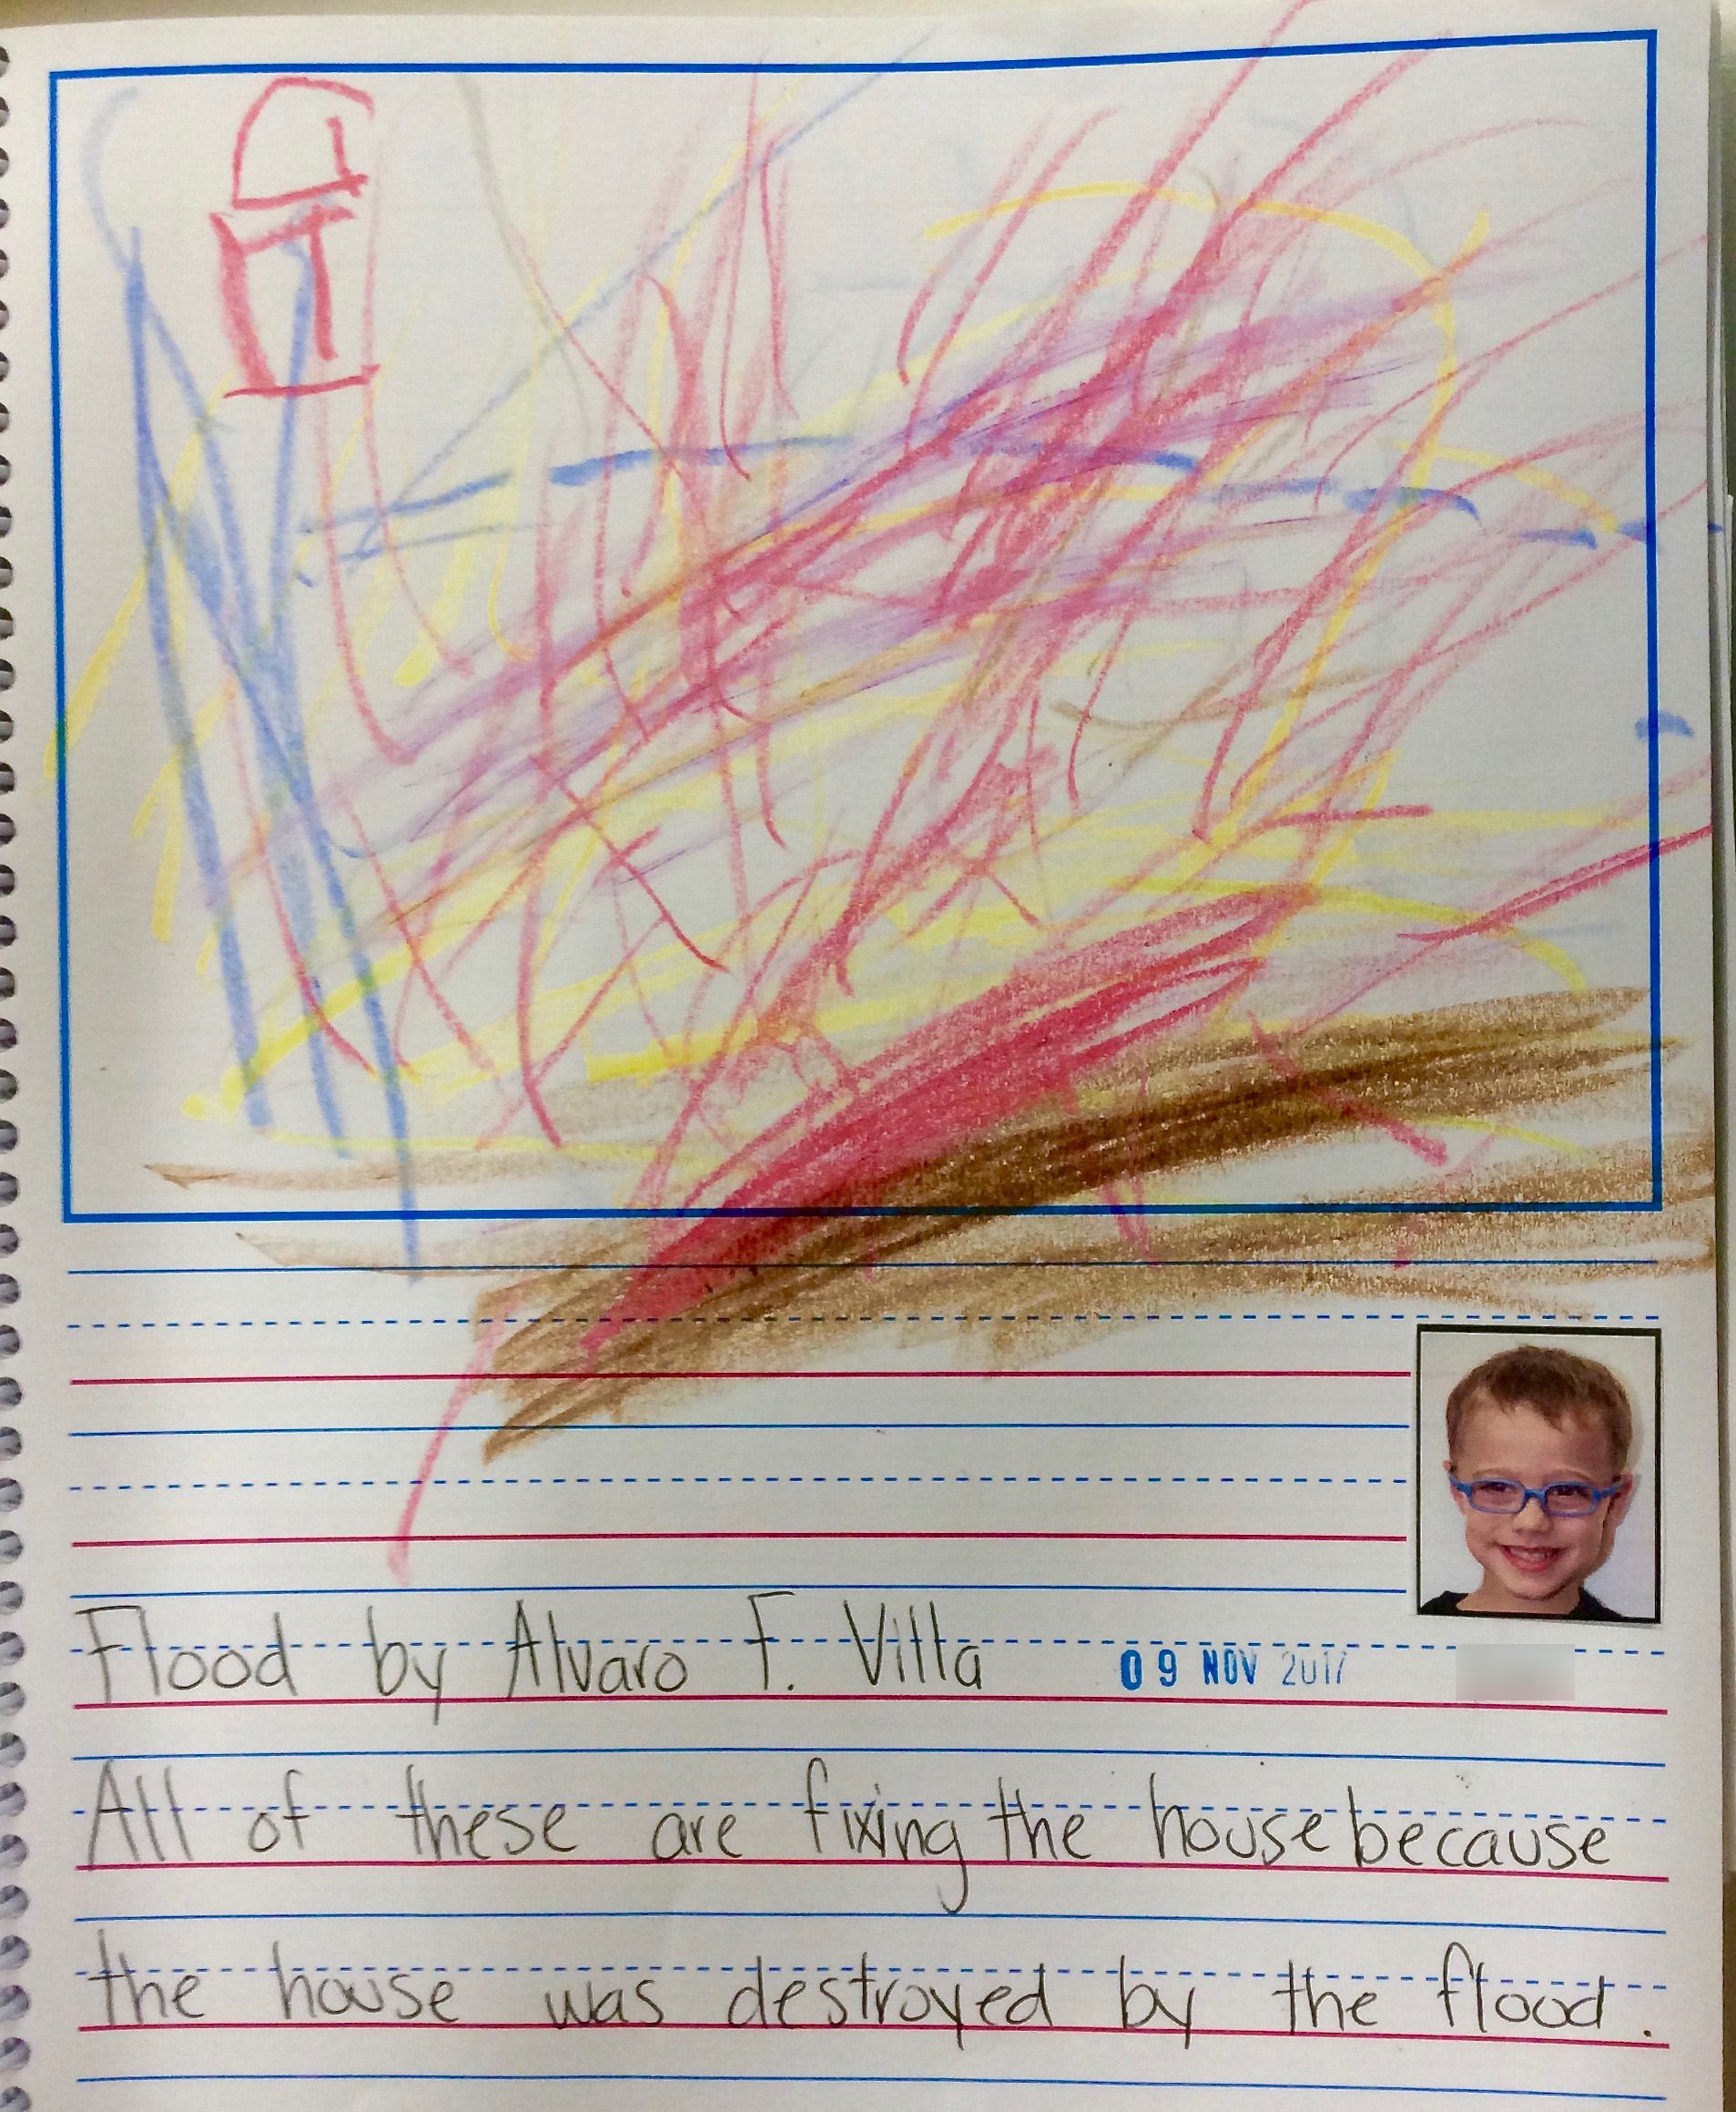 A student's journal entry in response to the book.